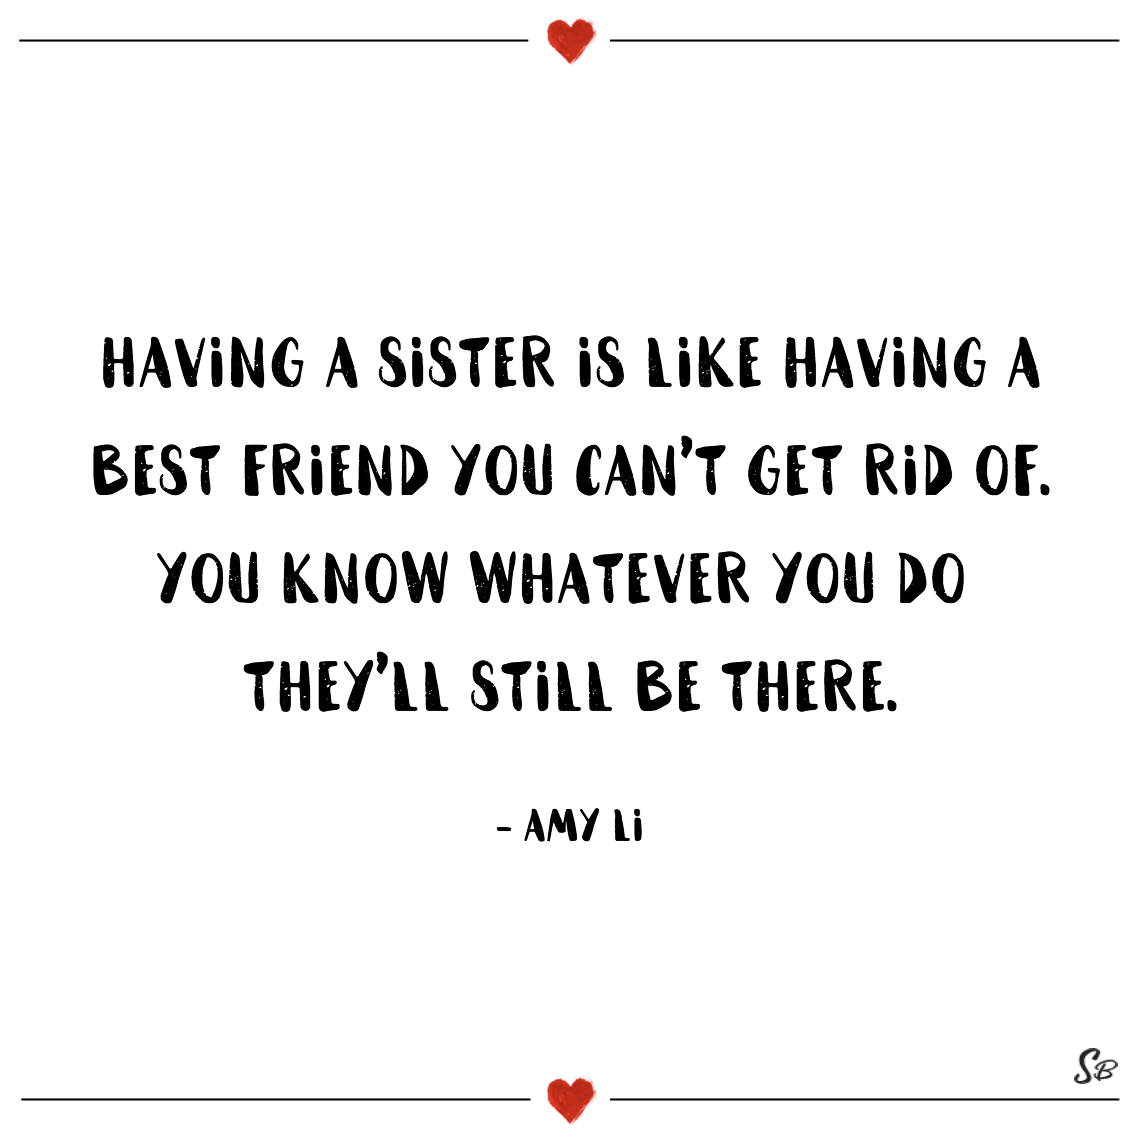 Having a sister is like having a best friend you can't get rid of. you know whatever you do they'll still be there. amy li